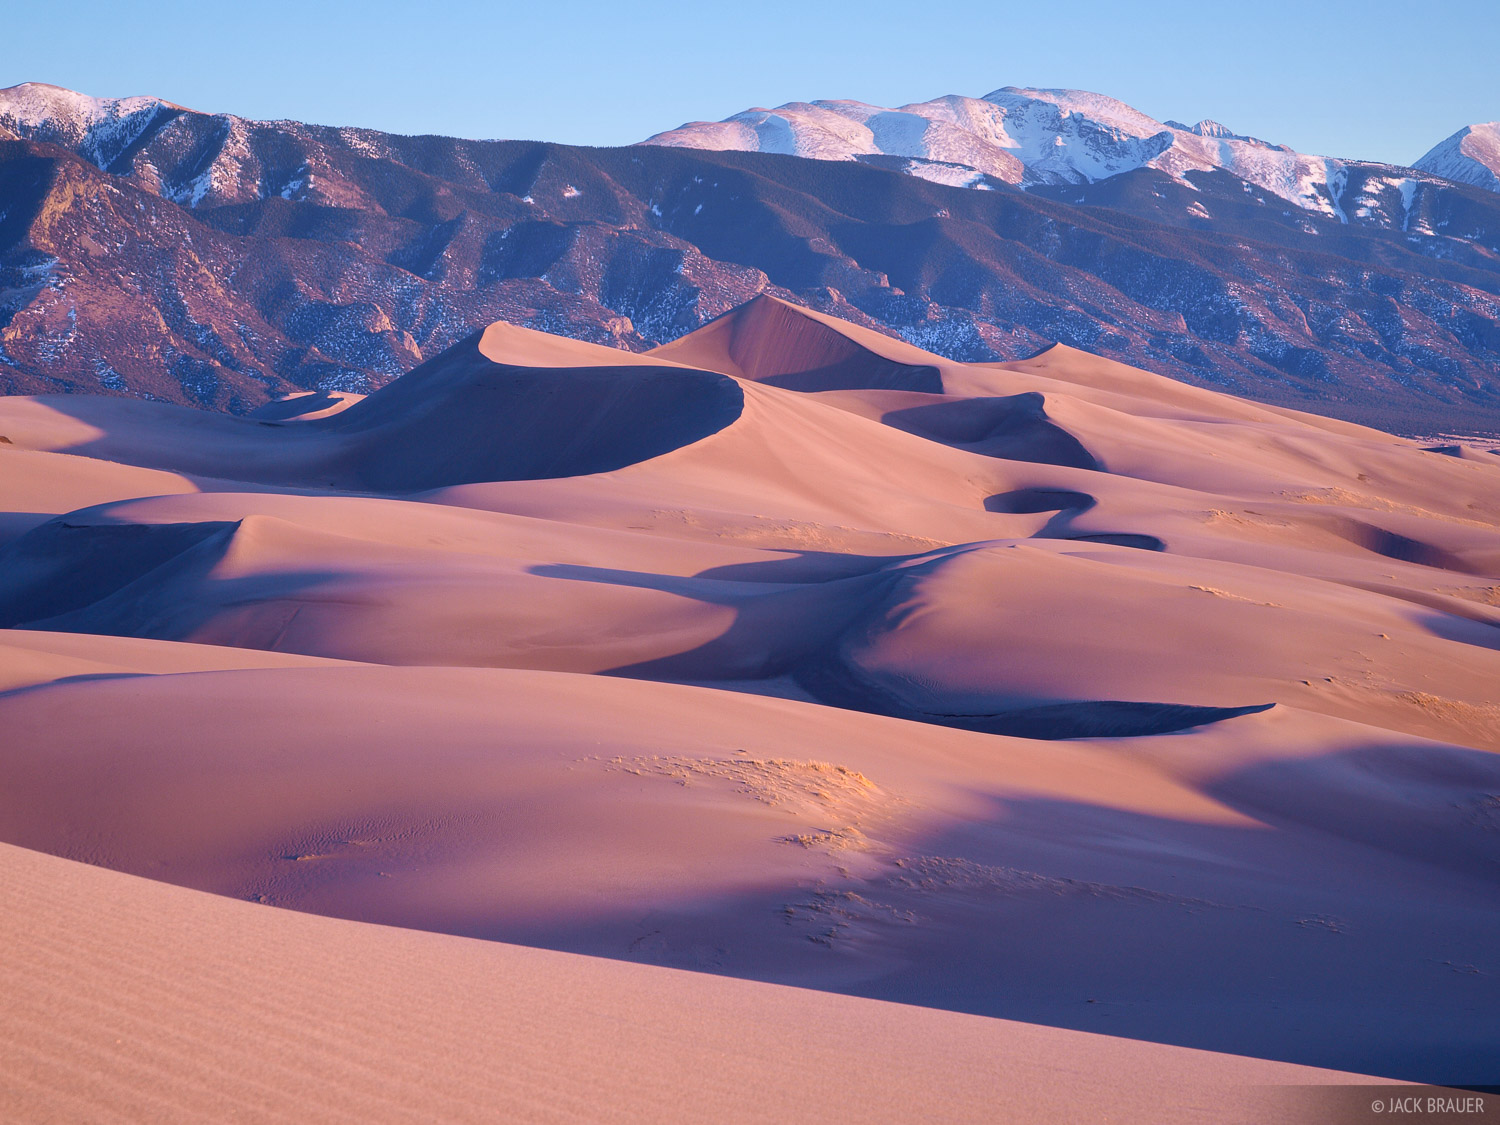 Star Dune, Great Sand Dunes, Colorado, sunset, photo